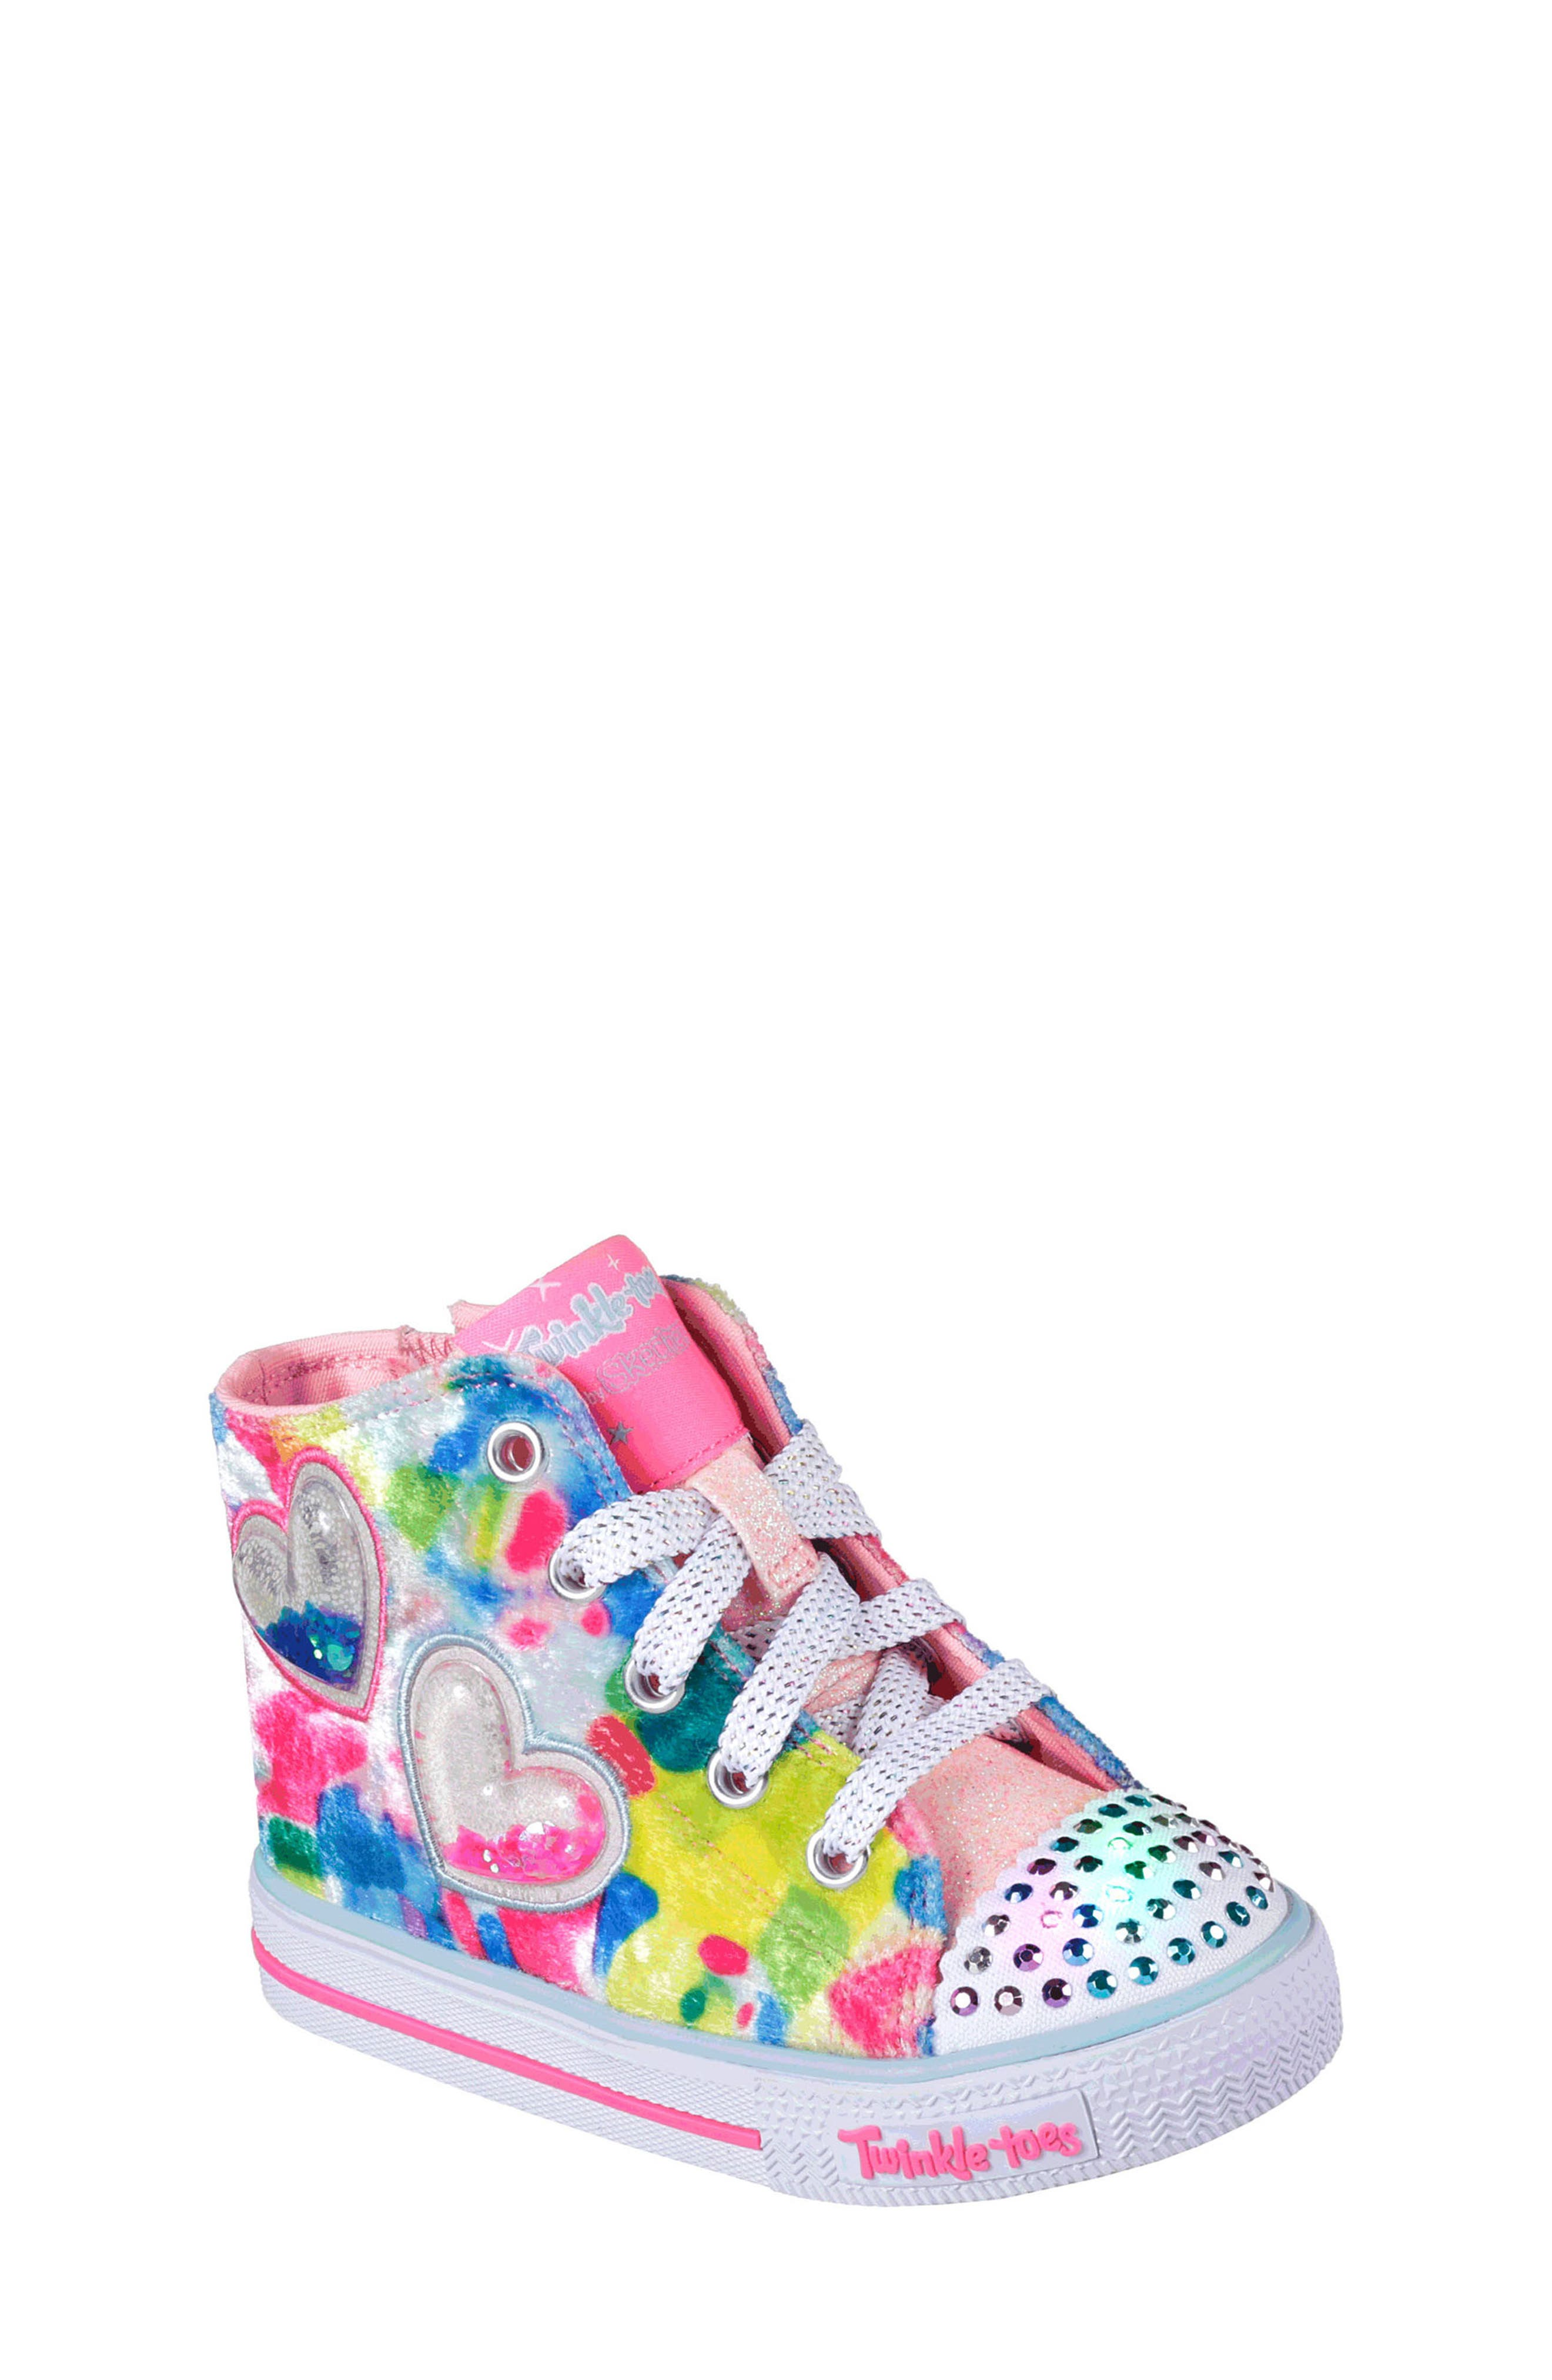 Twinkle Toes Shuffles Light-Up High Top Sneaker,                             Main thumbnail 2, color,